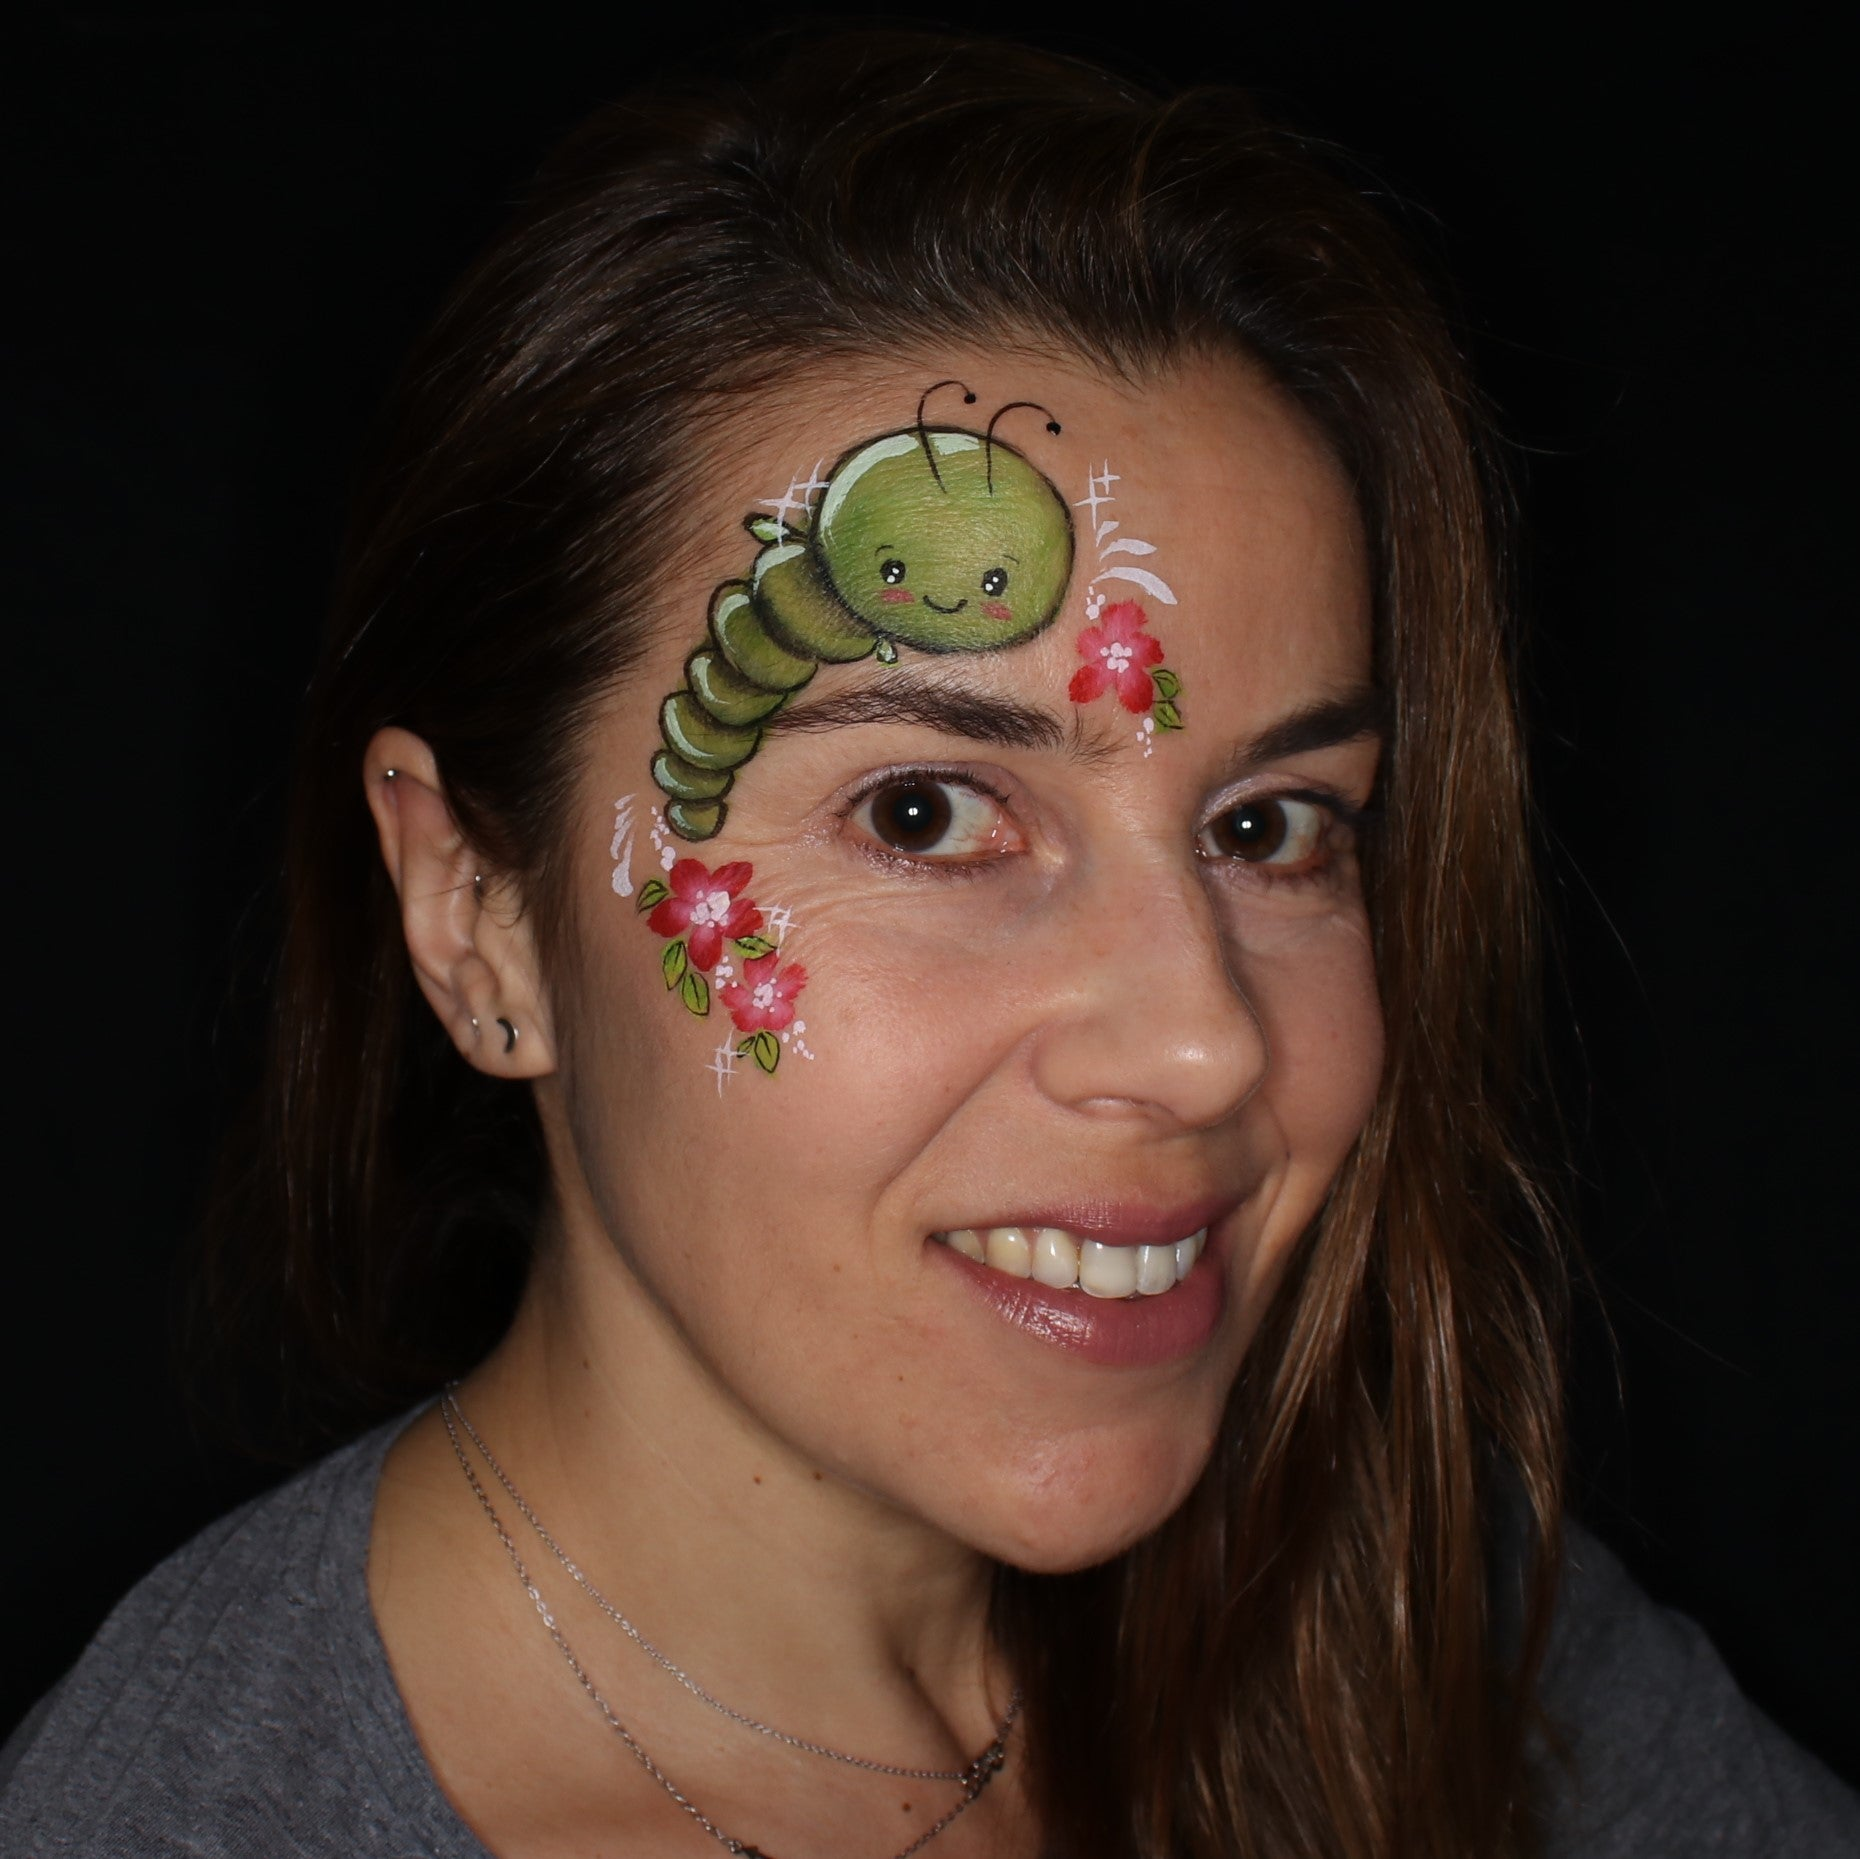 Kawaii Bug Face Painting Design by Belén Canosa